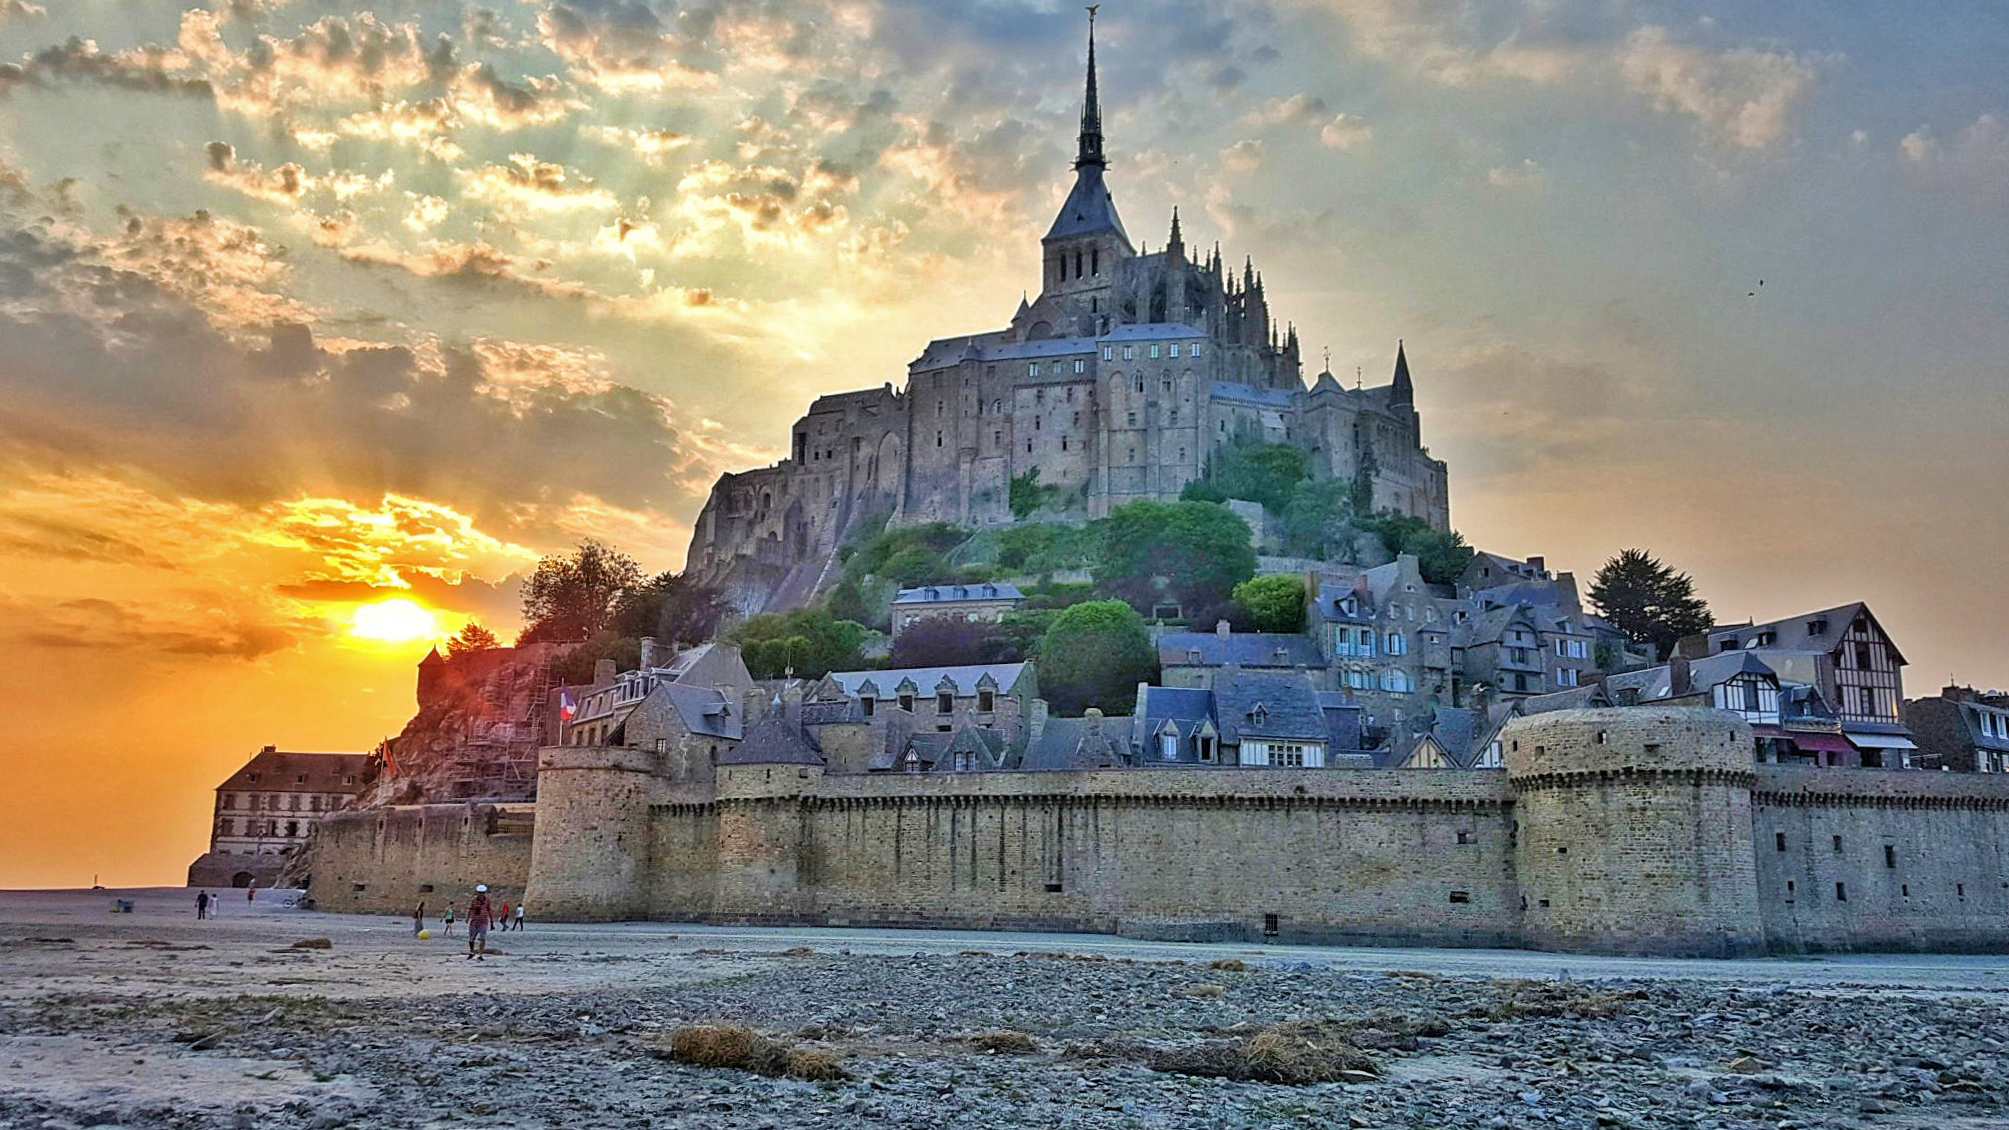 Mont St. Michel at sunset, a Disney real life location - TravelingMom